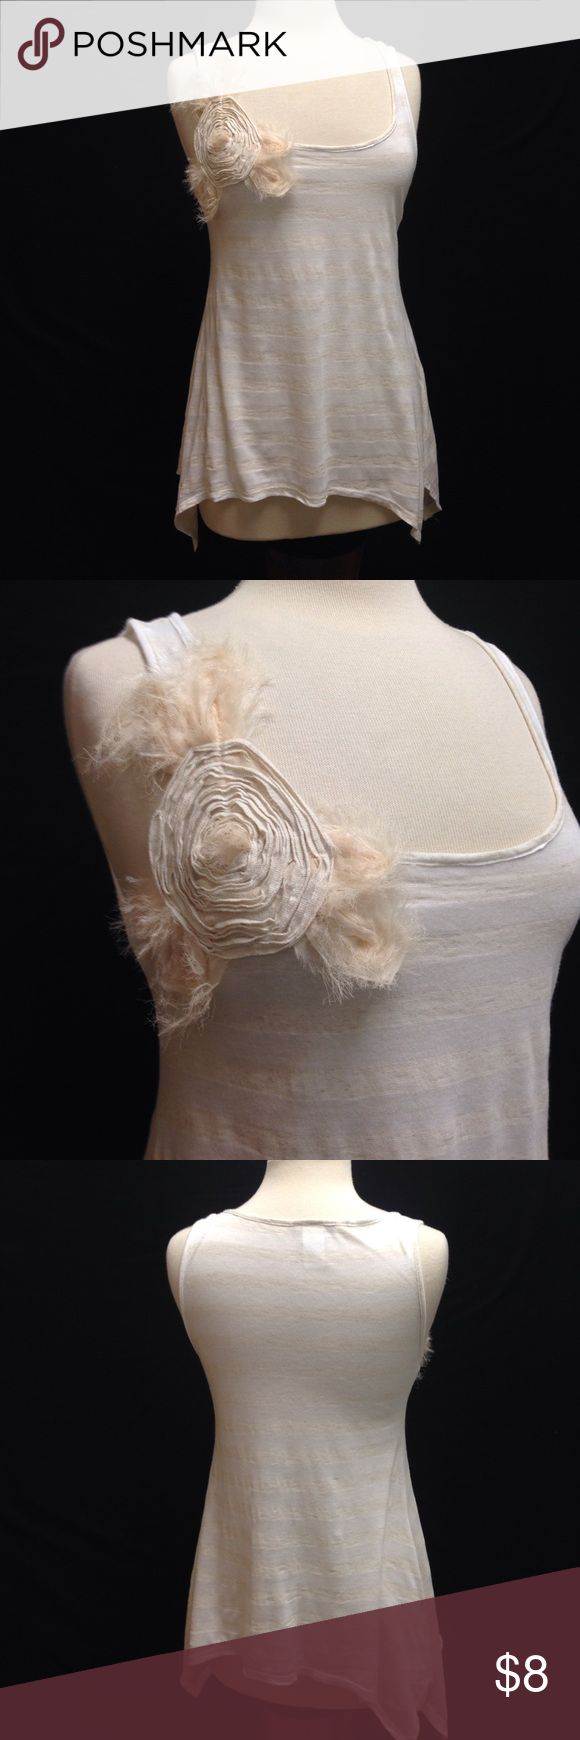 "Mon Ame Sheer Boutique Style Tank Bust 34"" Length 26"" Material stretches. This top is in excellent used condition. There are no rips stains or tears. Minimal signs of wear. Mon Ame Tops Tank Tops"